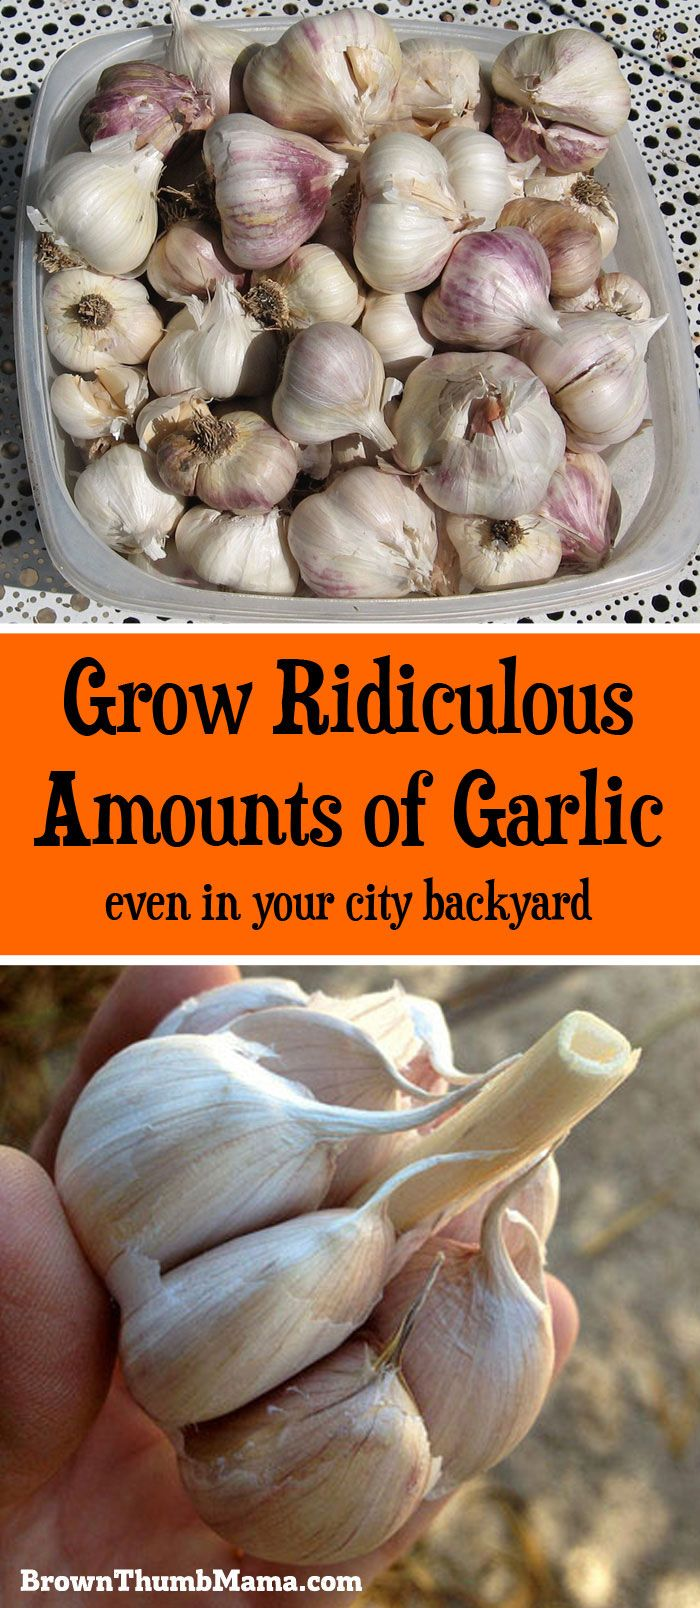 Grow Ridiculous Amounts of Garlic (even in your city backyard)